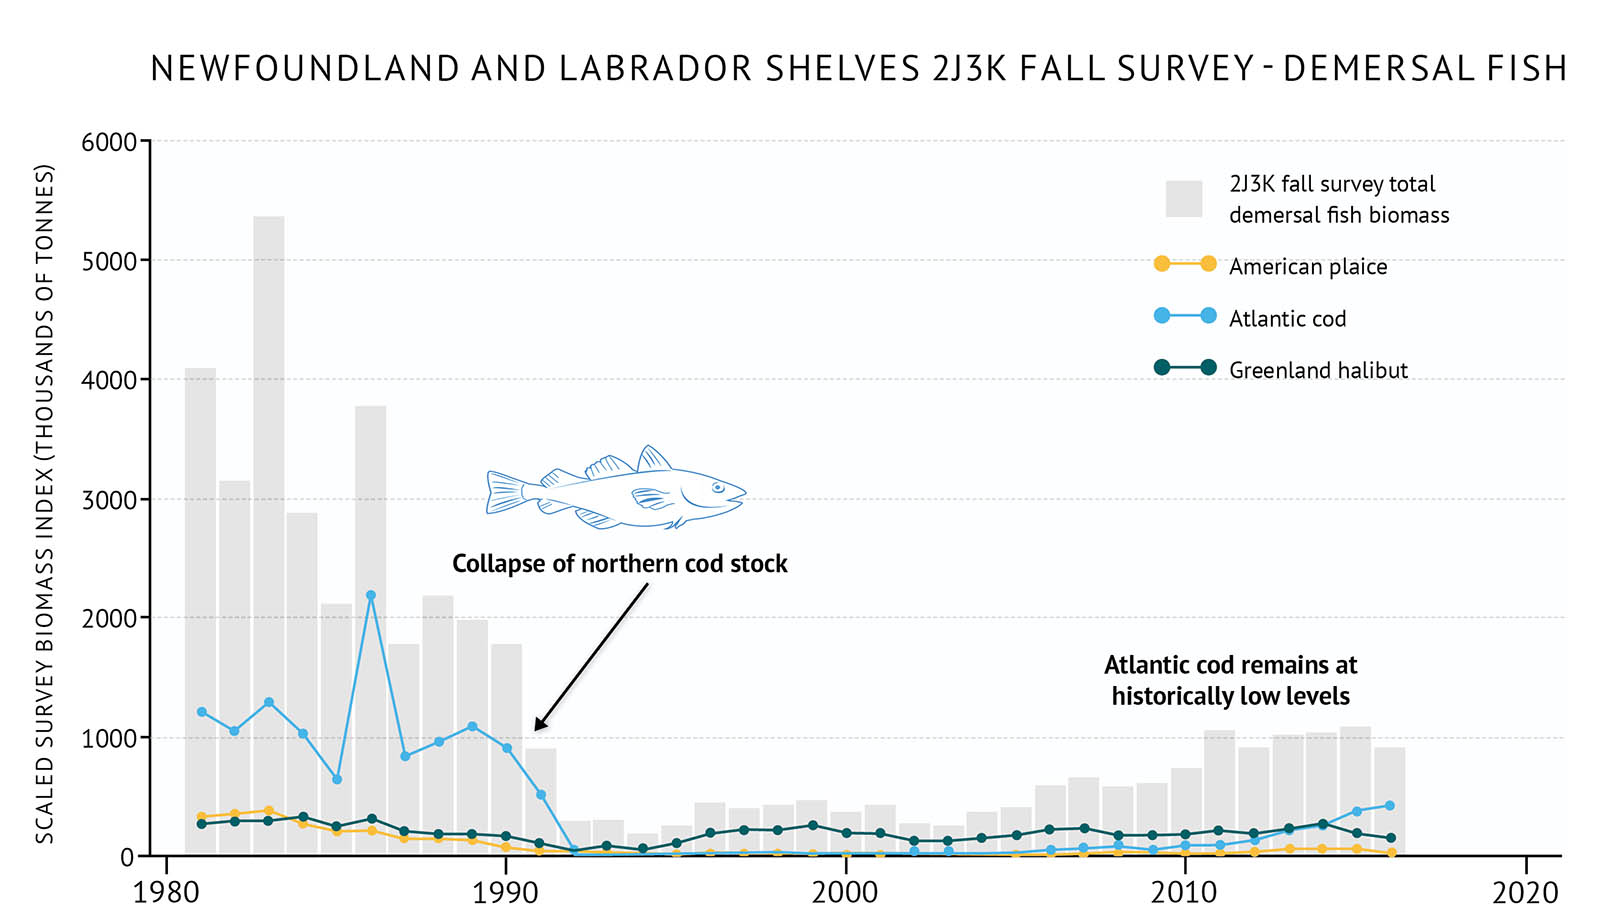 "Figure 33: Fall survey biomass of demersal fish species in 2J3K on the Newfoundland and Labrador Shelves along with individual demersal species biomass. A bar and line graph illustrates the fall survey biomass for demersal fish as well as individual species for the 2J3K NAFO zone of the Newfoundland and Labrador Shelves. Text above the graph says ""Newfoundland and Labrador Shelves 2J3K Fall Survey – Demersal Fish"". The vertical axis on the left shows the scaled survey biomass index in units of thousands of tonnes from 0 to 6000 in increments of 1000. The bottom horizontal axis shows the years between 1980 and 2020 in 10 year increments. The biomass for total demersal fish is represented by grey vertical bars. The total survey biomass is between 3000 and 5500 thousand tonnes in the early 1980s and then there is a large decline to approximately 250 thousand tonnes by 1992. It remains low in the 1990s and 2000s, and then there is a modest increase in the mid-2000s to near 1000 thousand tonnes. The fall survey biomass for three demersal fish species is represented by different coloured lines on the same graph. A legend appears on the right. A yellow data line illustrates the survey biomass trend for American plaice. A light blue data line illustrates the survey biomass trend for American cod. A dark green data line illustrates the survey biomass trend for Greenland halibut. Atlantic cod biomass is over 1000 thousand tonnes in the 1980s, but then There is a large decline in the late 1980s and early 1990s with the biomass approaching the bottom of the graph. There is a modest increase starting in the mid-2000s bringing the biomass towards 300-400 thousand tonnes. American plaice and Greenland halibut biomasses are lower than Atlantic cod in the 1980s. American plaice is near 200 to 300 thousand tonnes but decreases in the late 1980s to early 1990s to less than 100 thousand tonnes. It remains low until the mid-2000s when has a modest increase. Greenland halibut biomass is generally around 200-300 thousand tonnes with a decline in the late 1980s and early 1990s to below 100 thousand tonnes. It increases again in the mid-1990s and then it stays 100 to 200 thousand tonnes. A small, light blue outline-drawing of an Atlantic cod is placed on the graph above the vertical bars to the left-hand side. Below the drawing there is text which states ""Collapse of northern cod stock"". An arrow points from the text to the vertical bars for the early 1990s time period. Another line of text is placed on the graph to the right-hand side above the vertical bars which states ""Atlantic cod remains at historically low levels""."